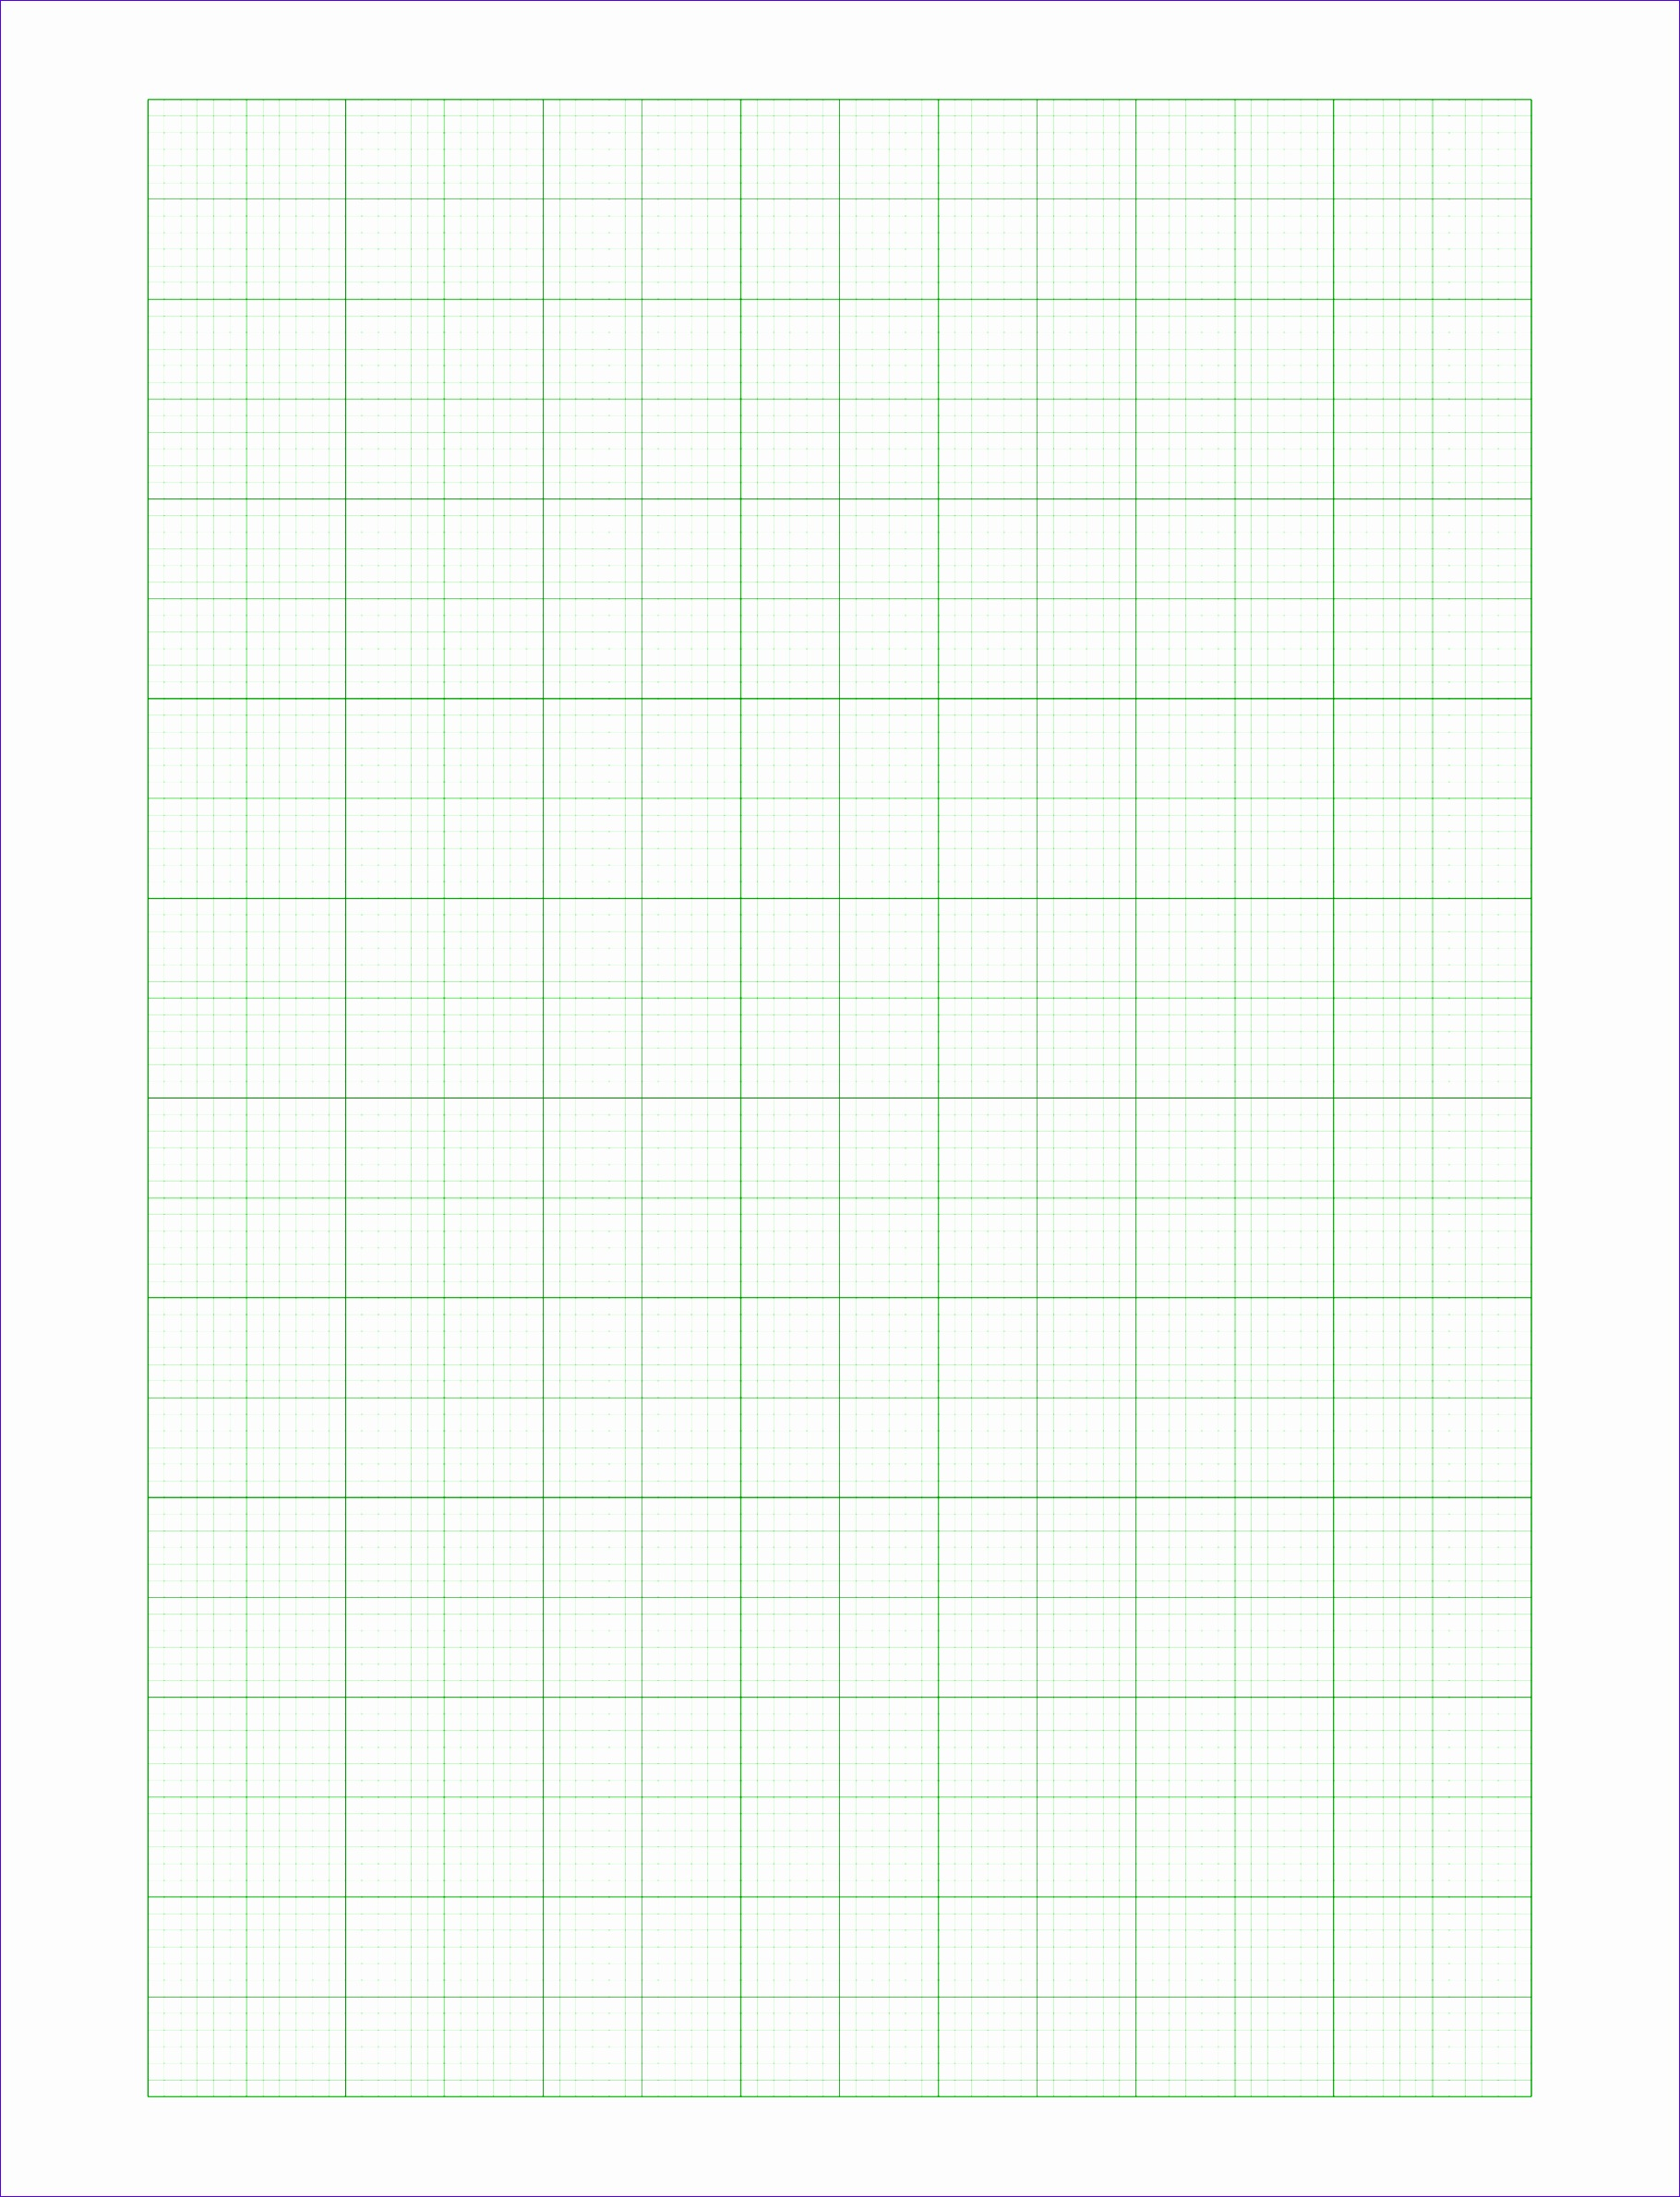 6 Graph Paper Template Excel   ExcelTemplates   ExcelTemplates  Graph Paper Word Document